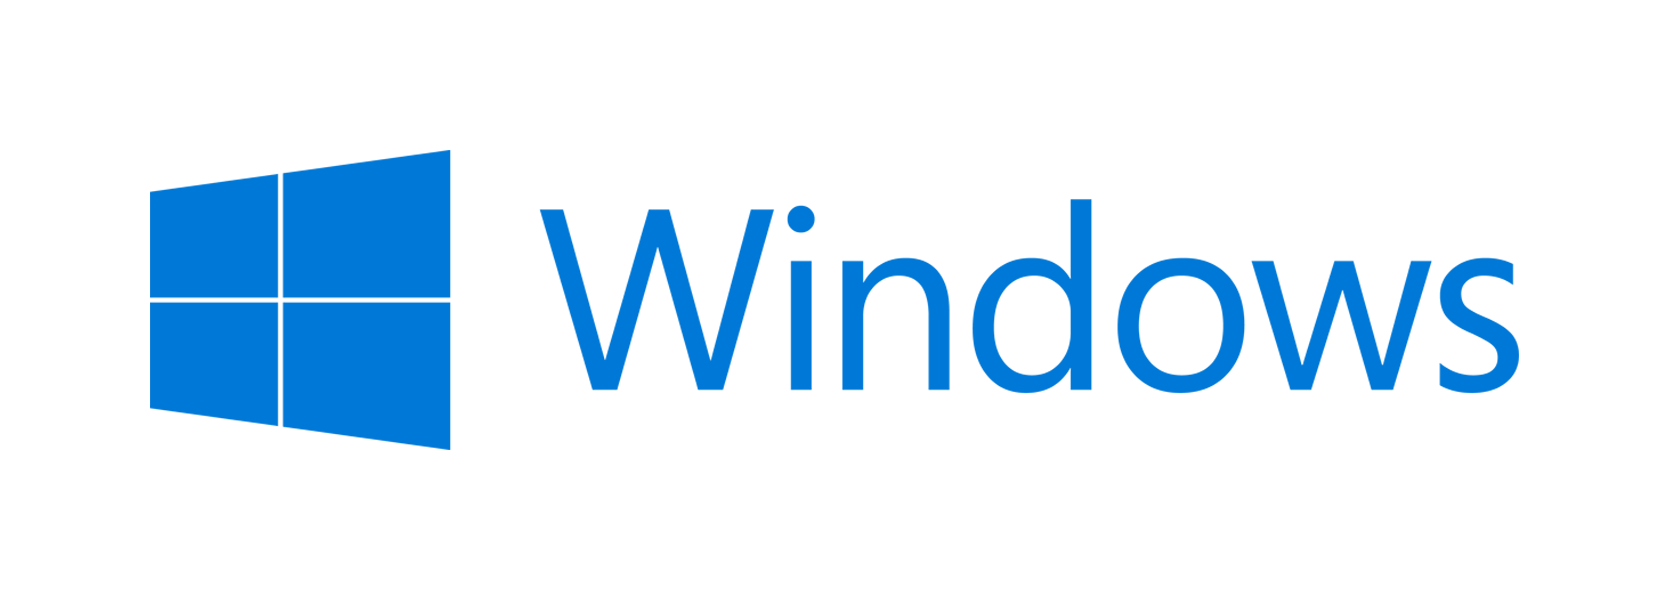 windows-logo